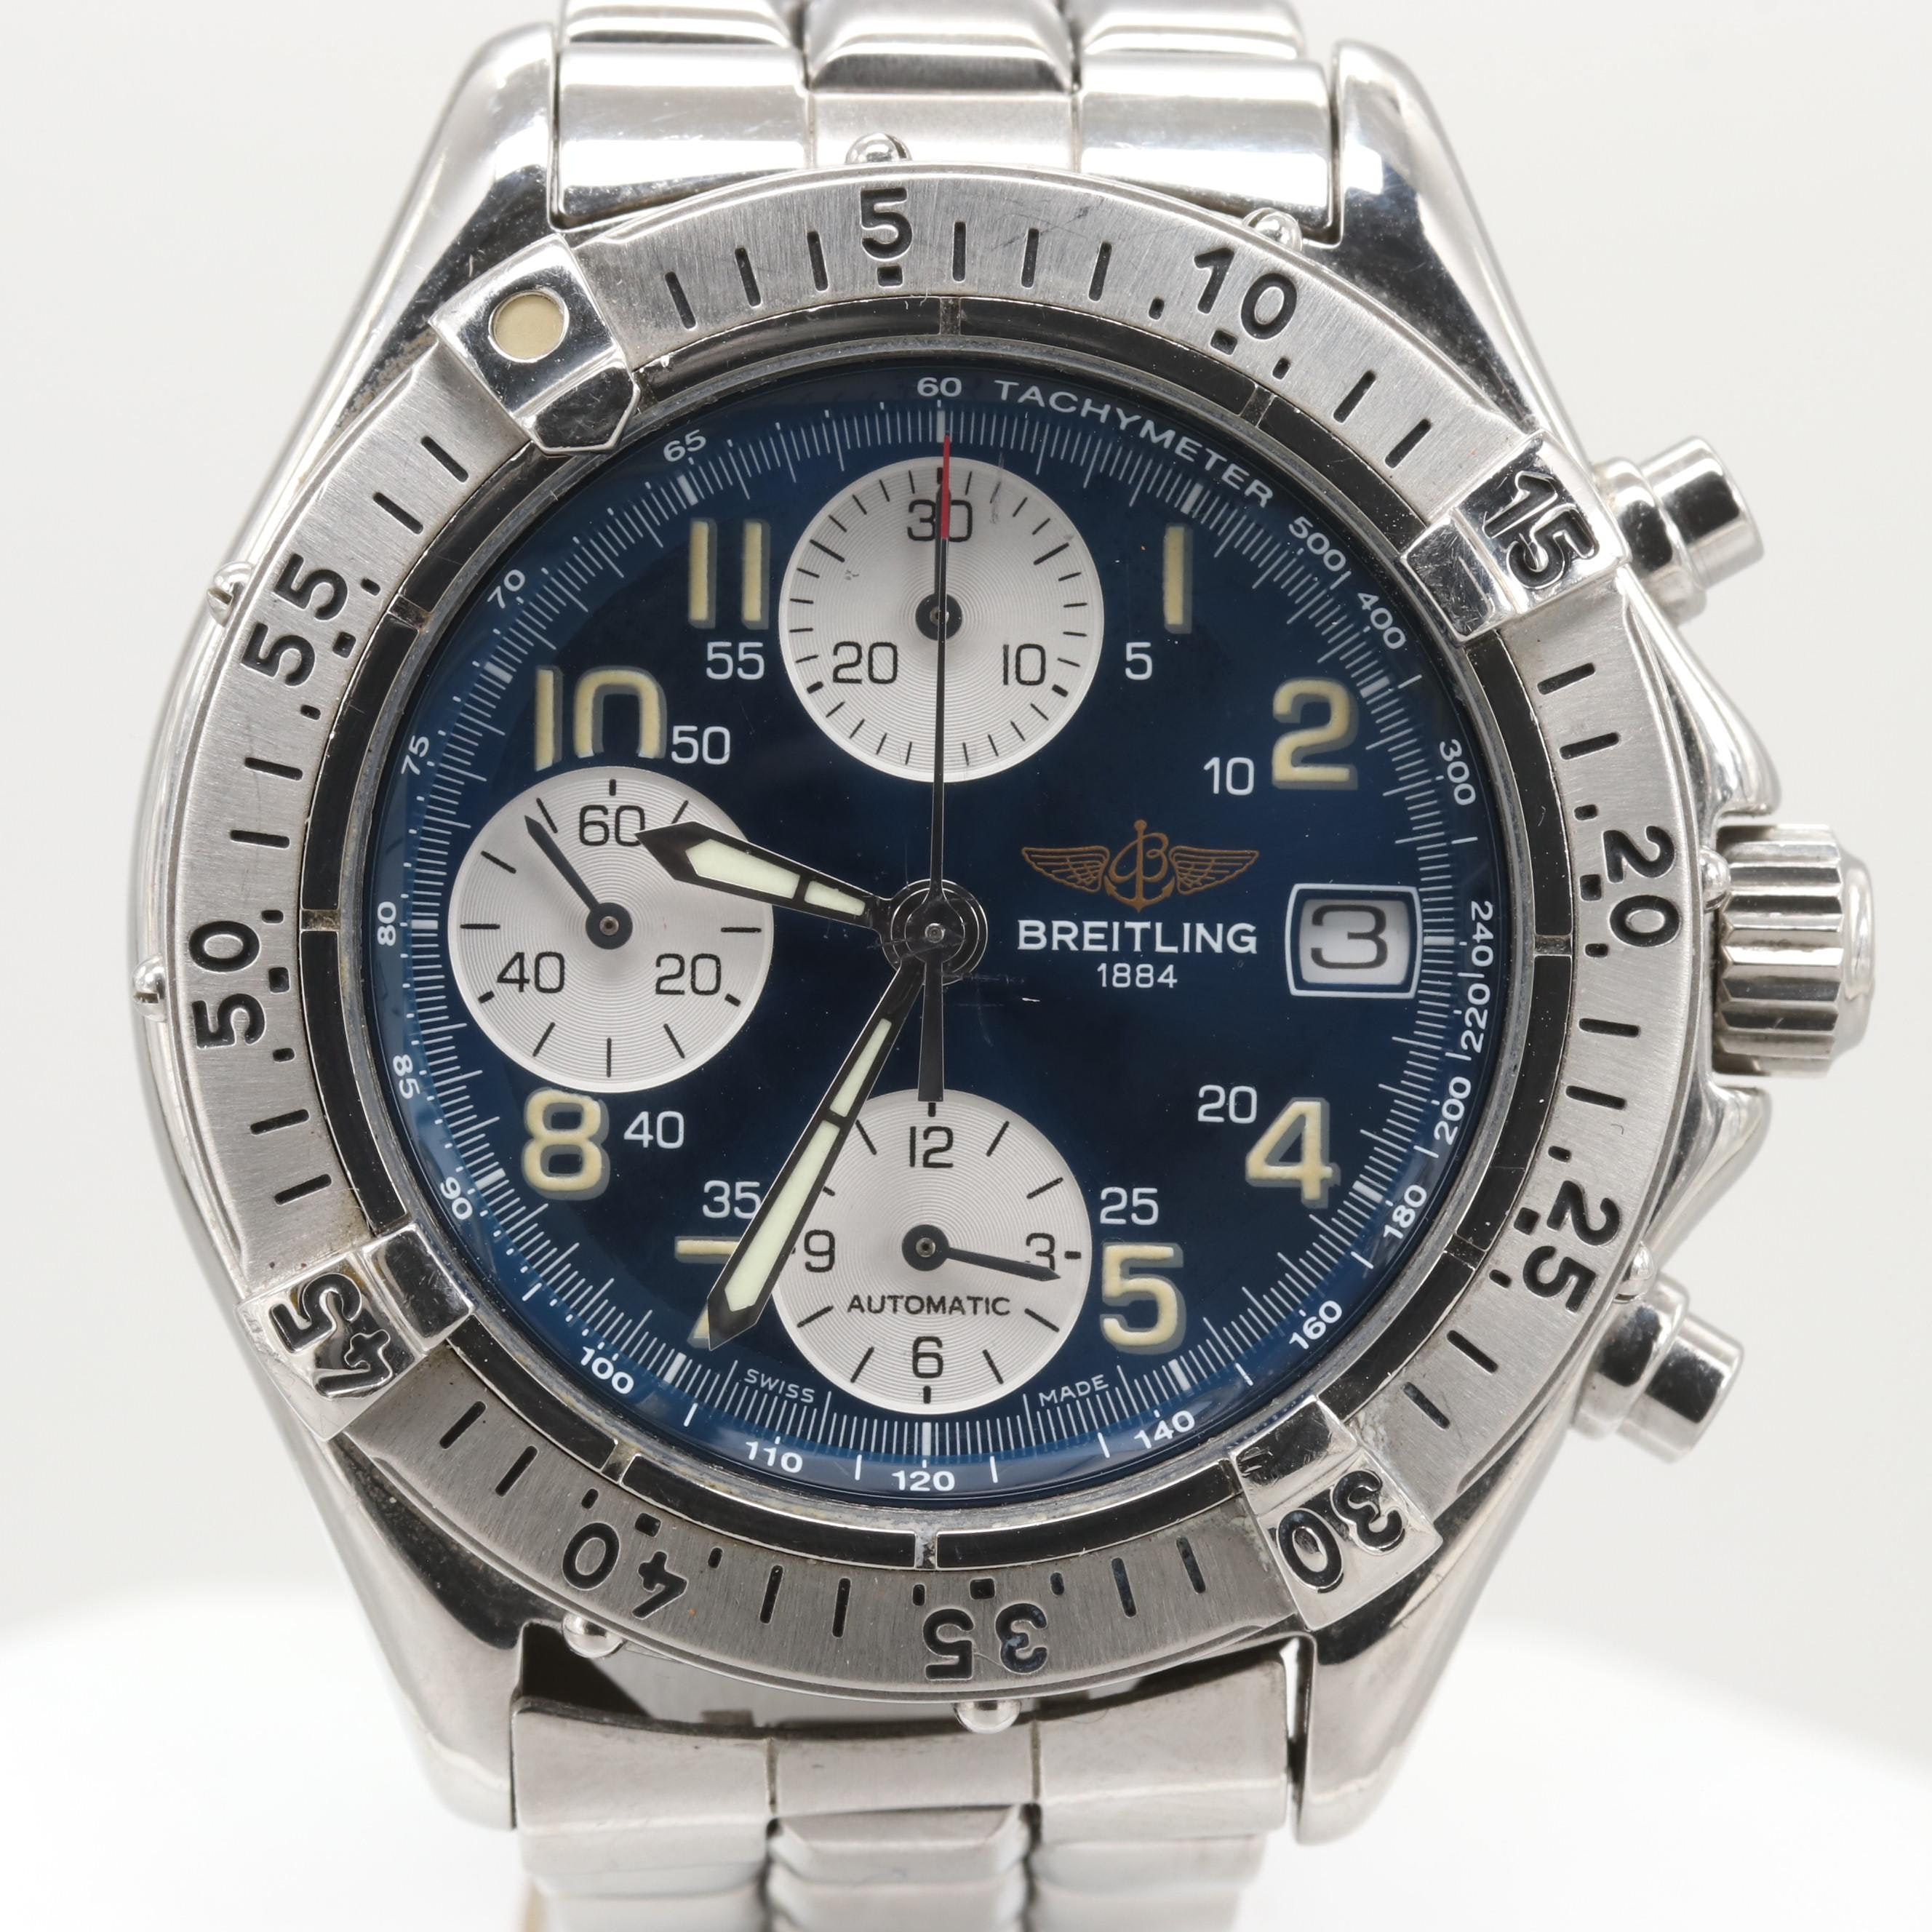 Breitling Colt Chronograph Stainless Steel Automatic Wristwatch